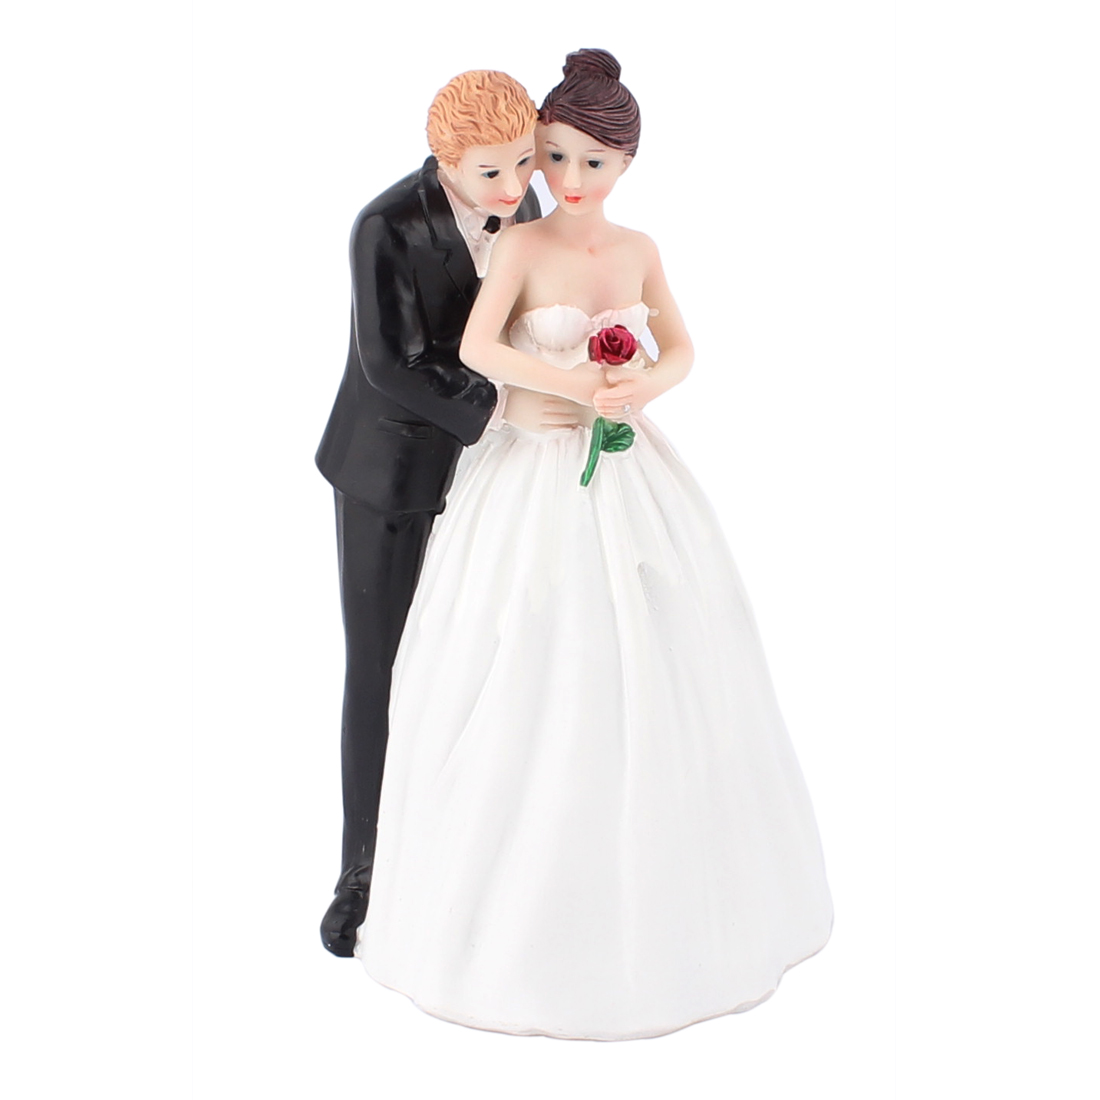 Custom Hug Bride Groom Couple Figurine Wedding Cake Topper Decoration Gift Favor